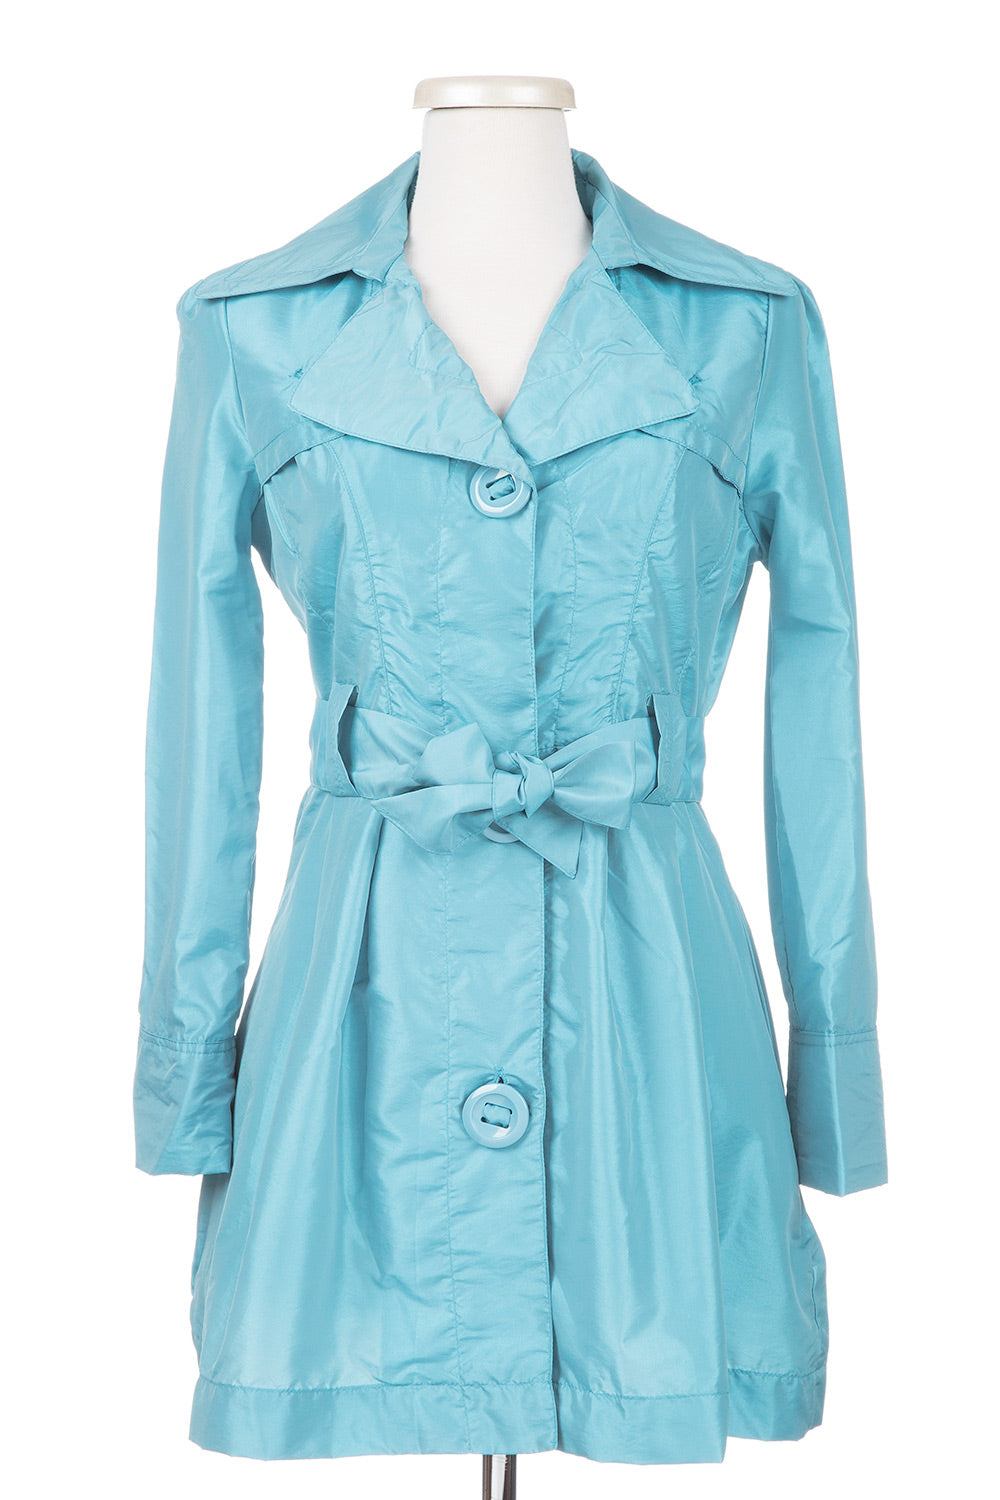 Type 1 Singing in the Rain Jacket